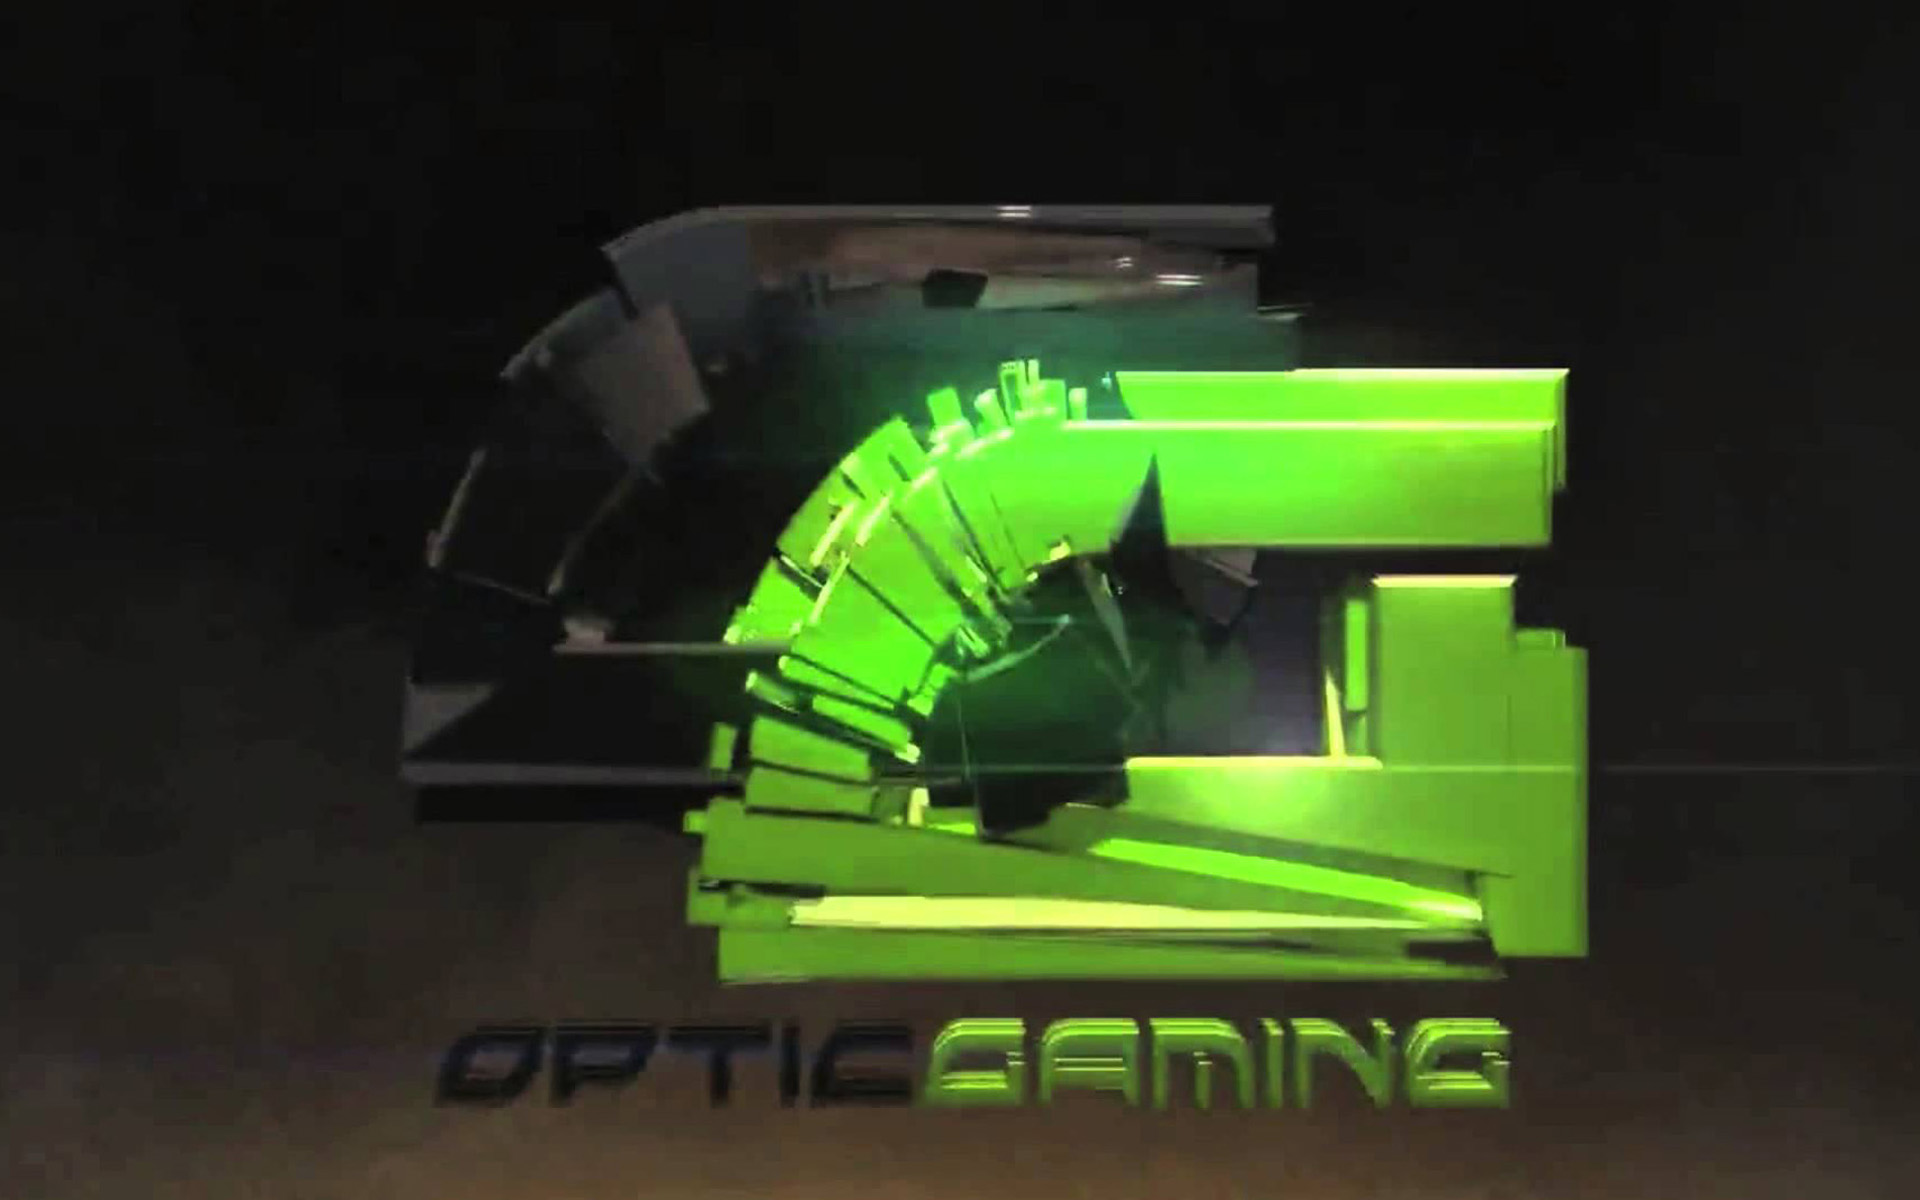 optic gaming desktop background 1920x1200